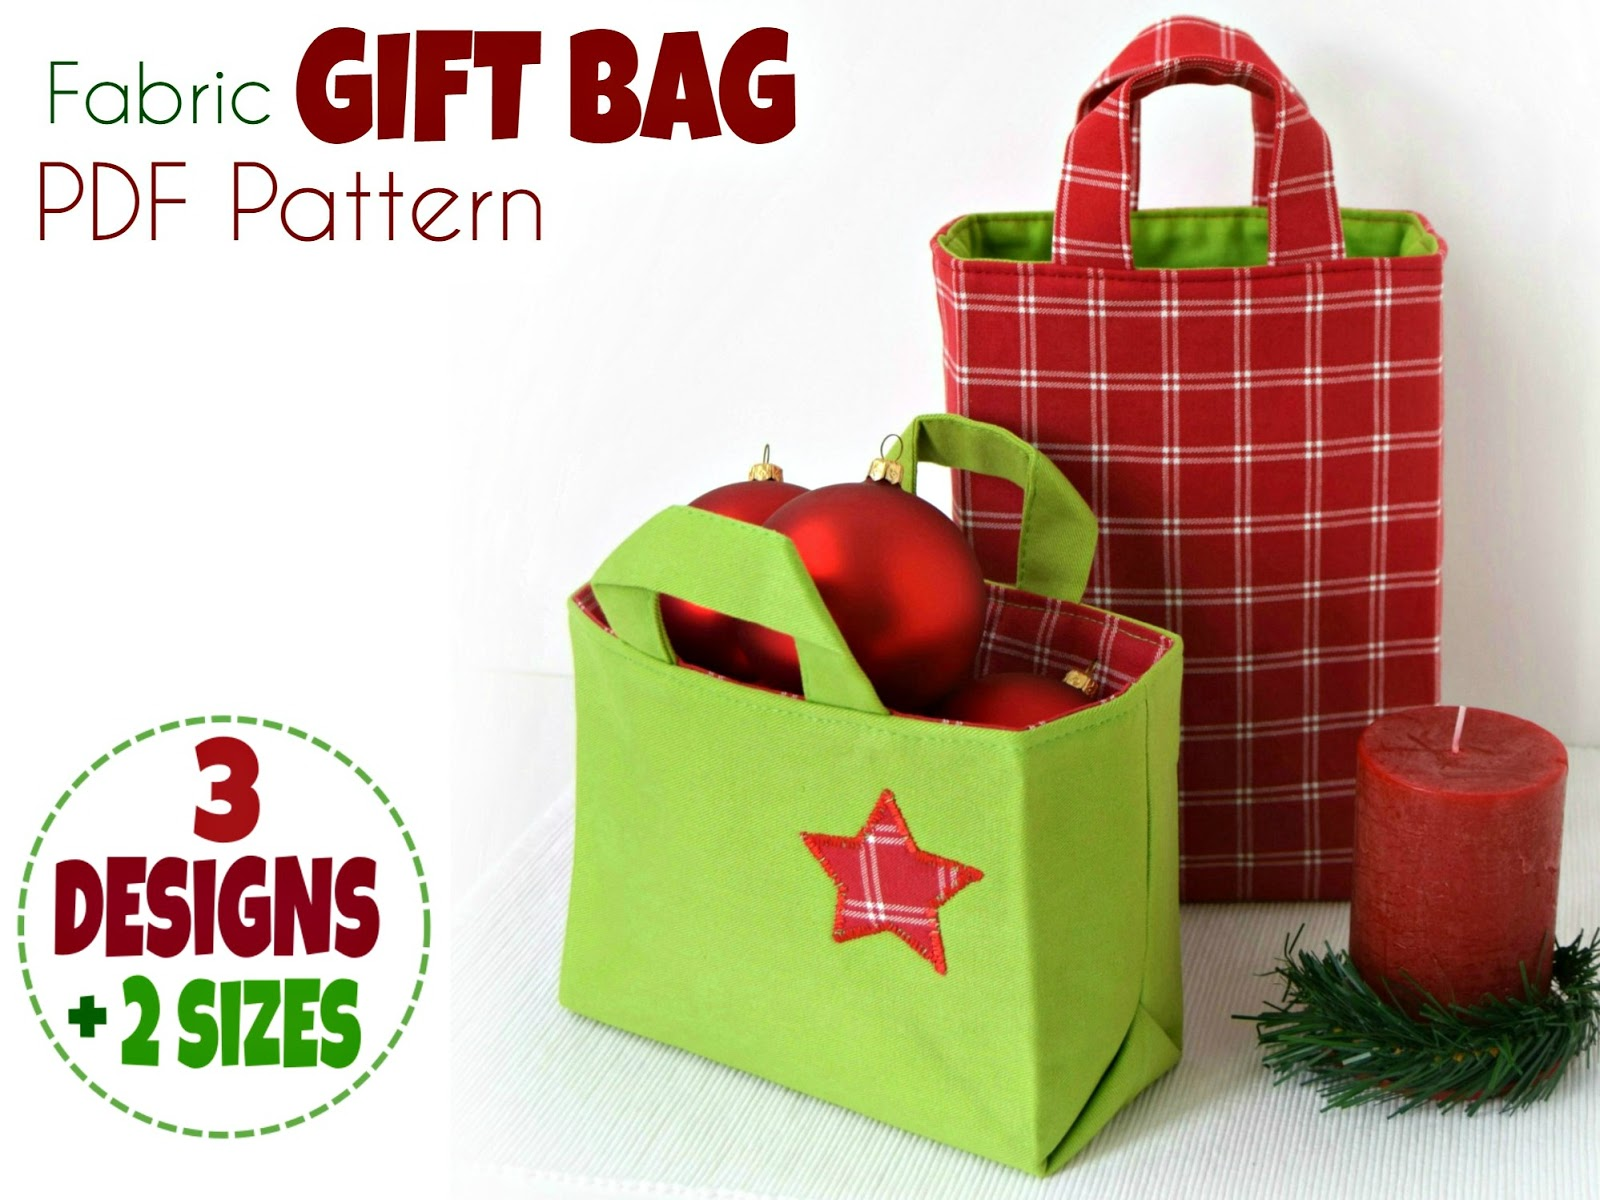 Fabric Gift Bag PDF PATTERN - new release